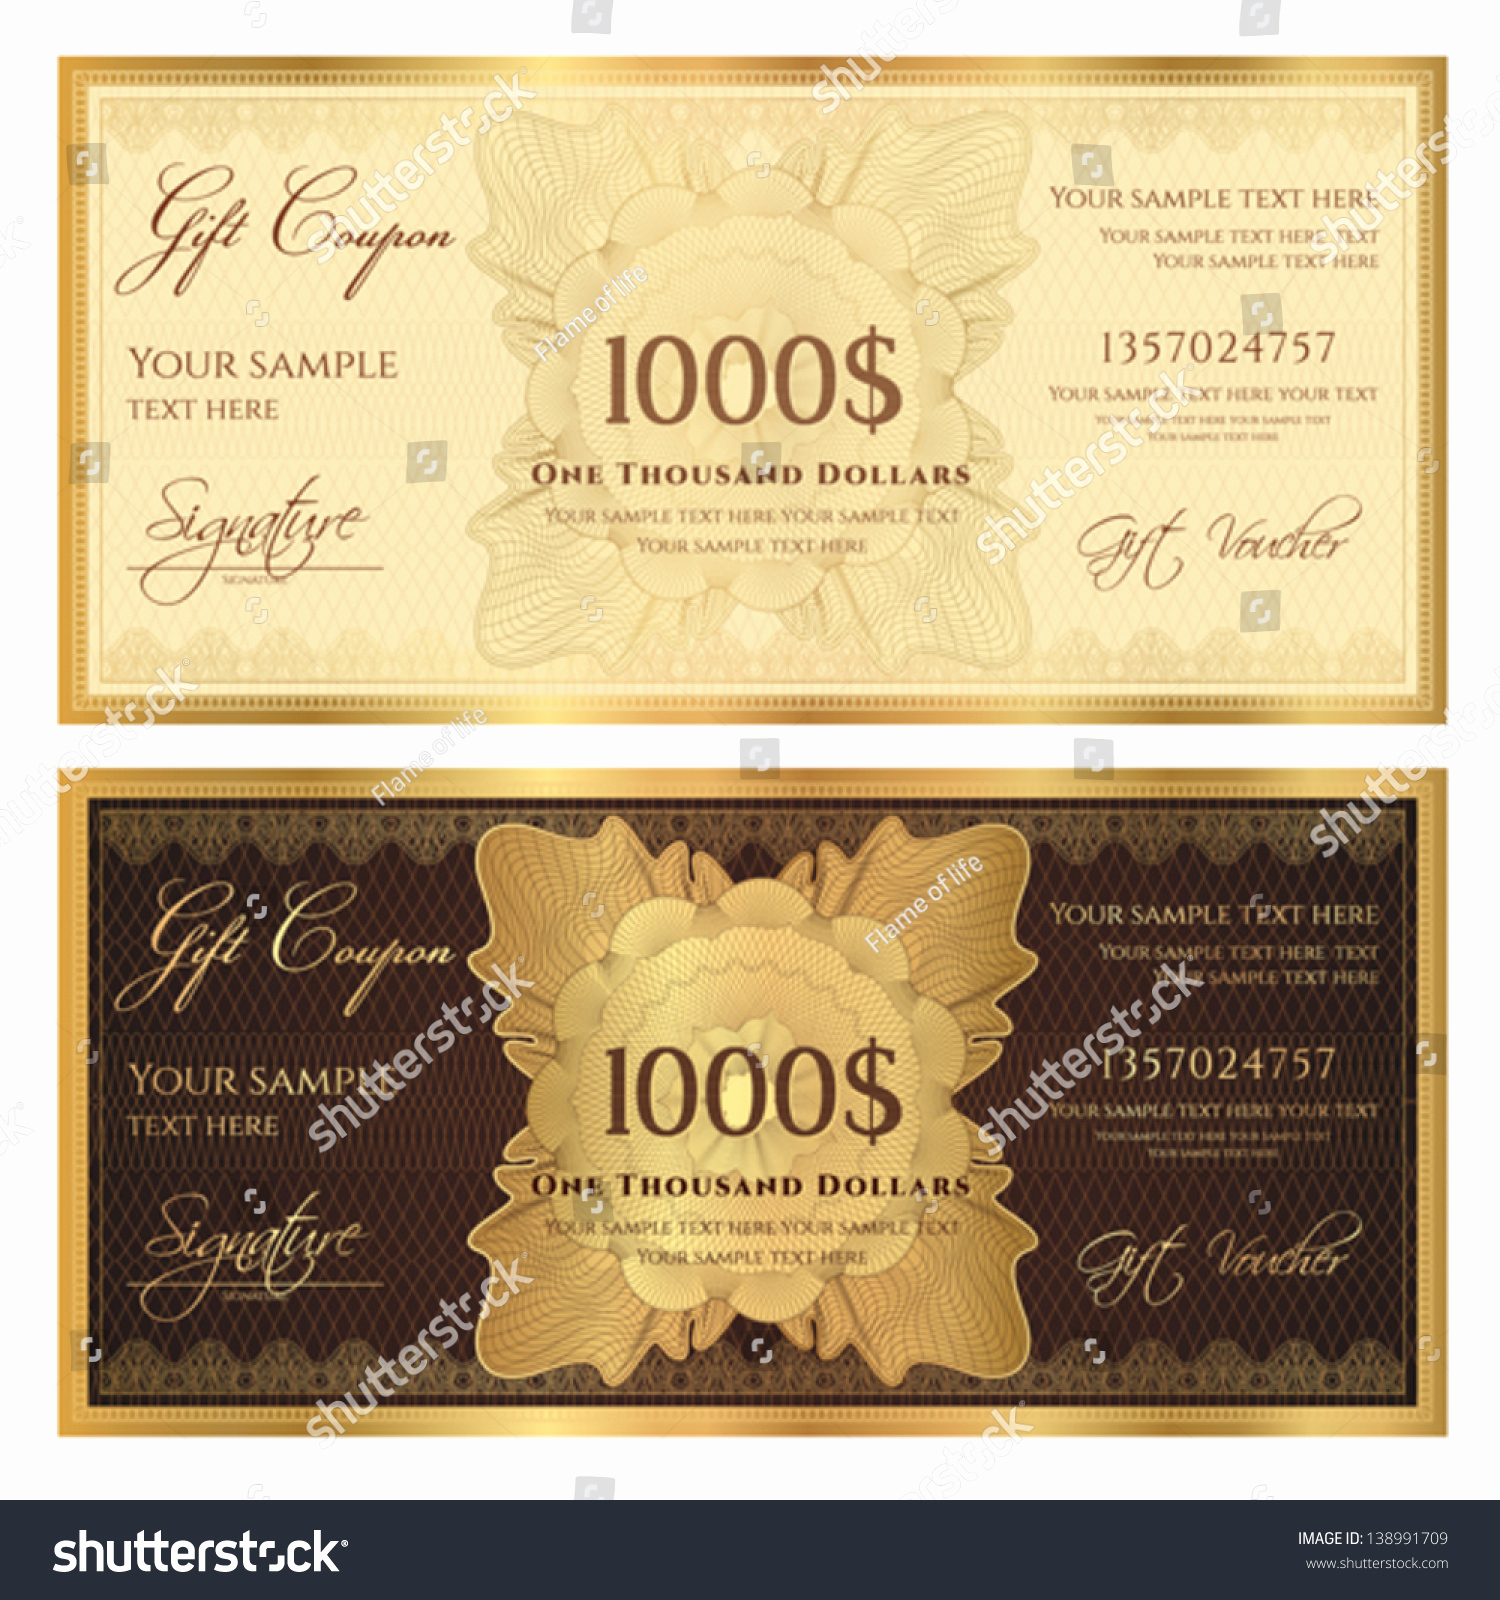 Money Gift Certificate Template Lovely Gift Certificate Voucher Template with Guilloche Pattern